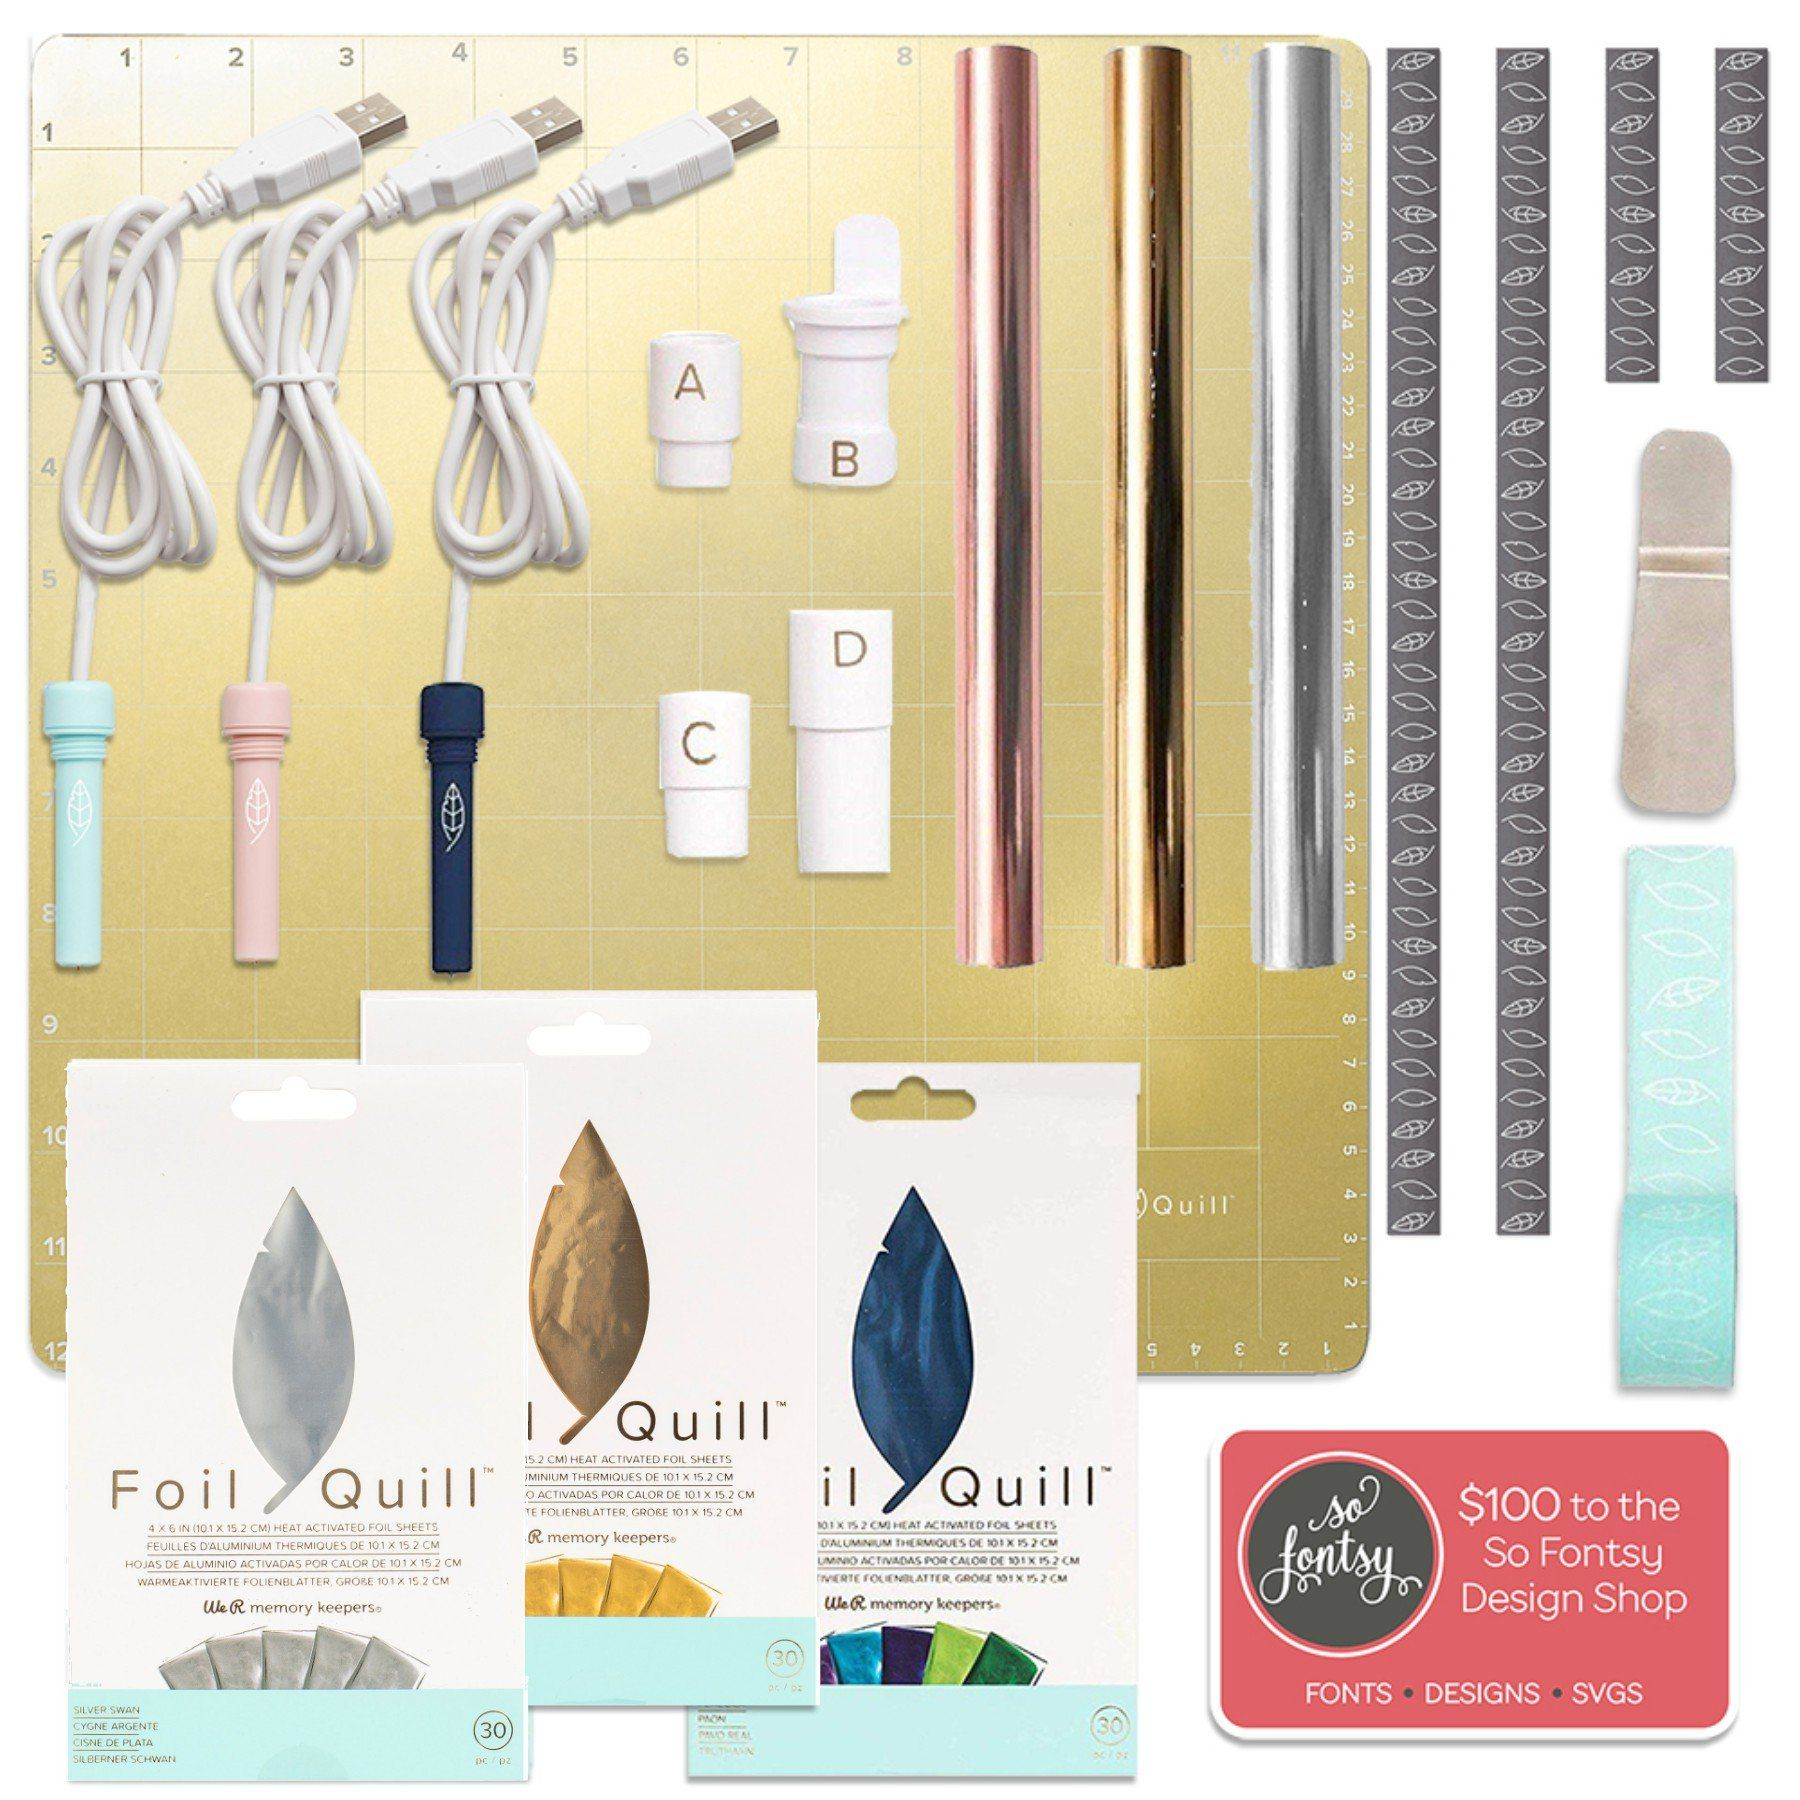 Foil Quill All In One Bundle Magnetic Mat 3 Foil Sets 3 Quills Adapters Design Card Swing Design Swing Design Shop Design Quilling